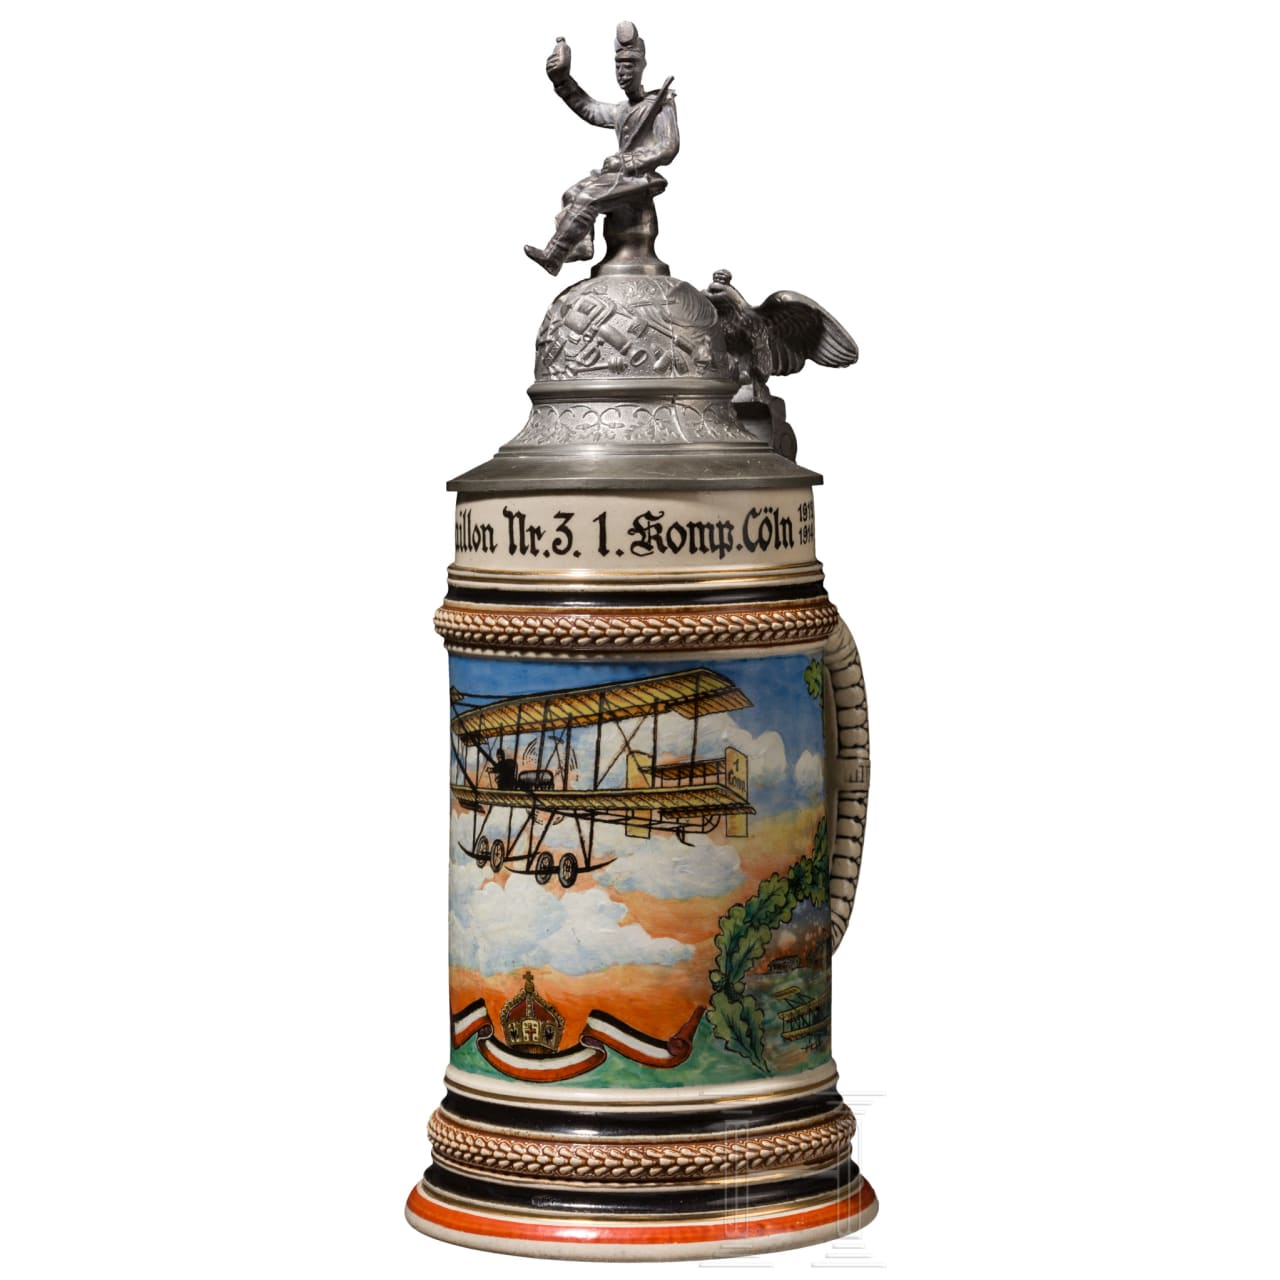 """A reservist's stein belonging to reservist Jägerle of the (tr.) """"Flight Battalion No. 3 1st Company Cologne 1912-14"""""""